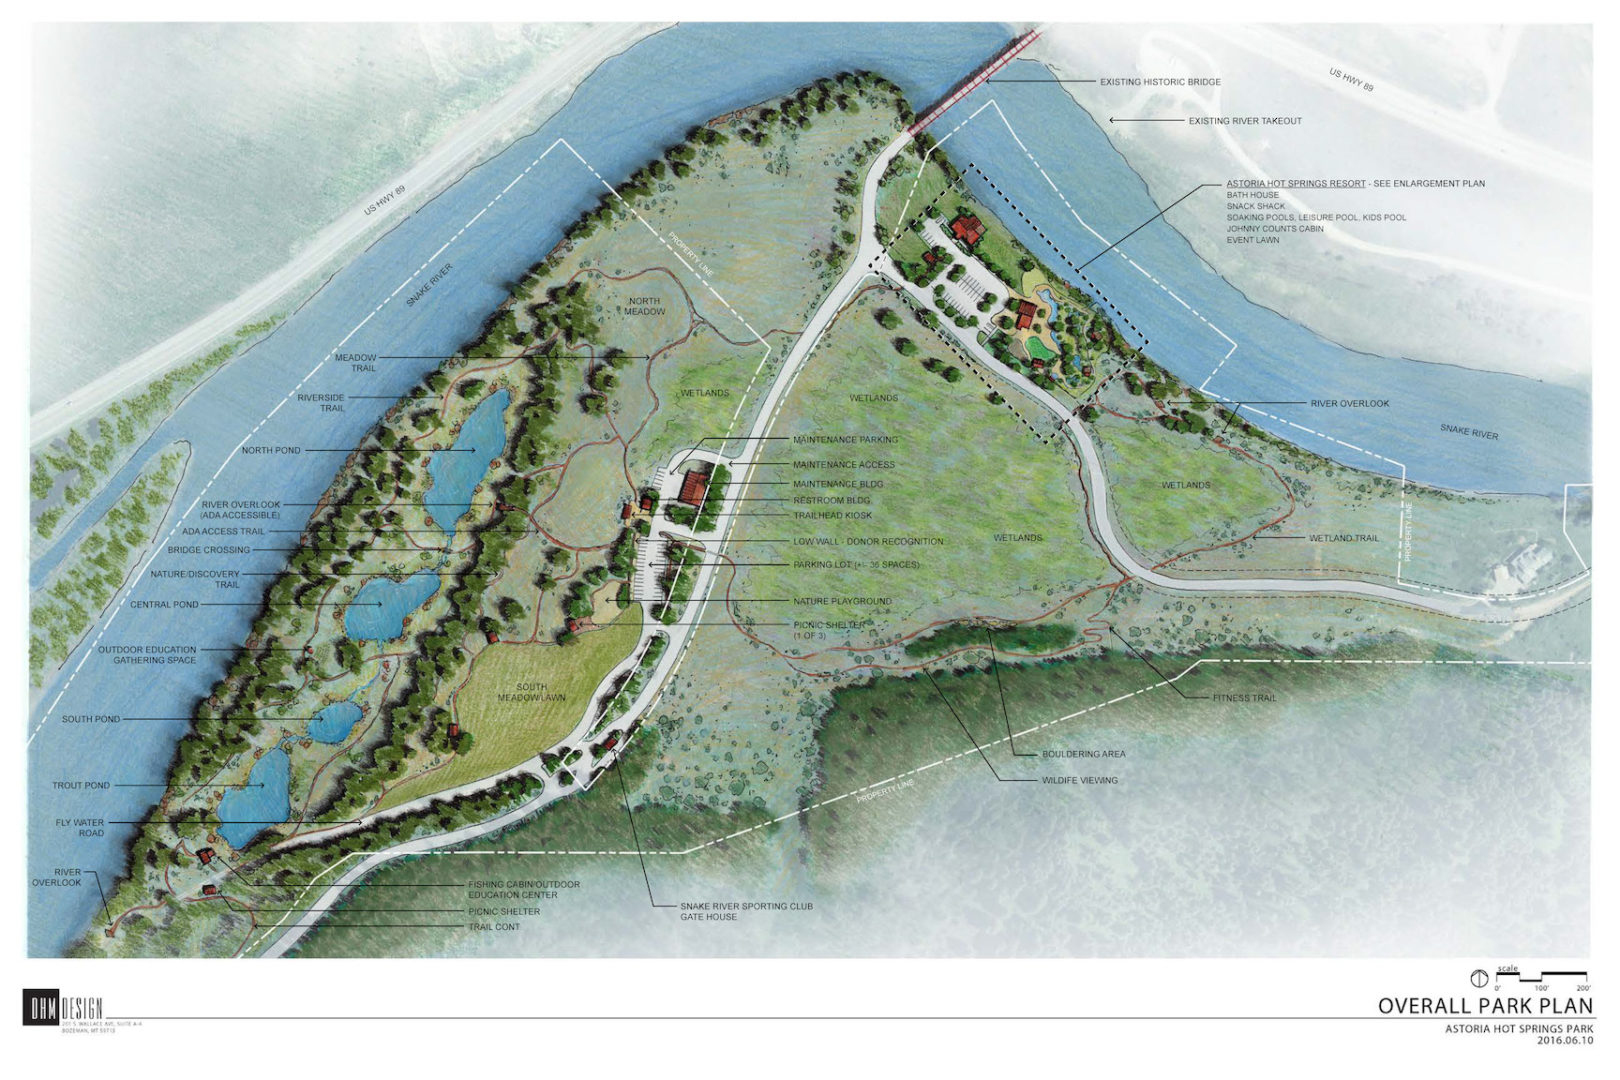 Astoria Hot Springs Park coming together, could break ground